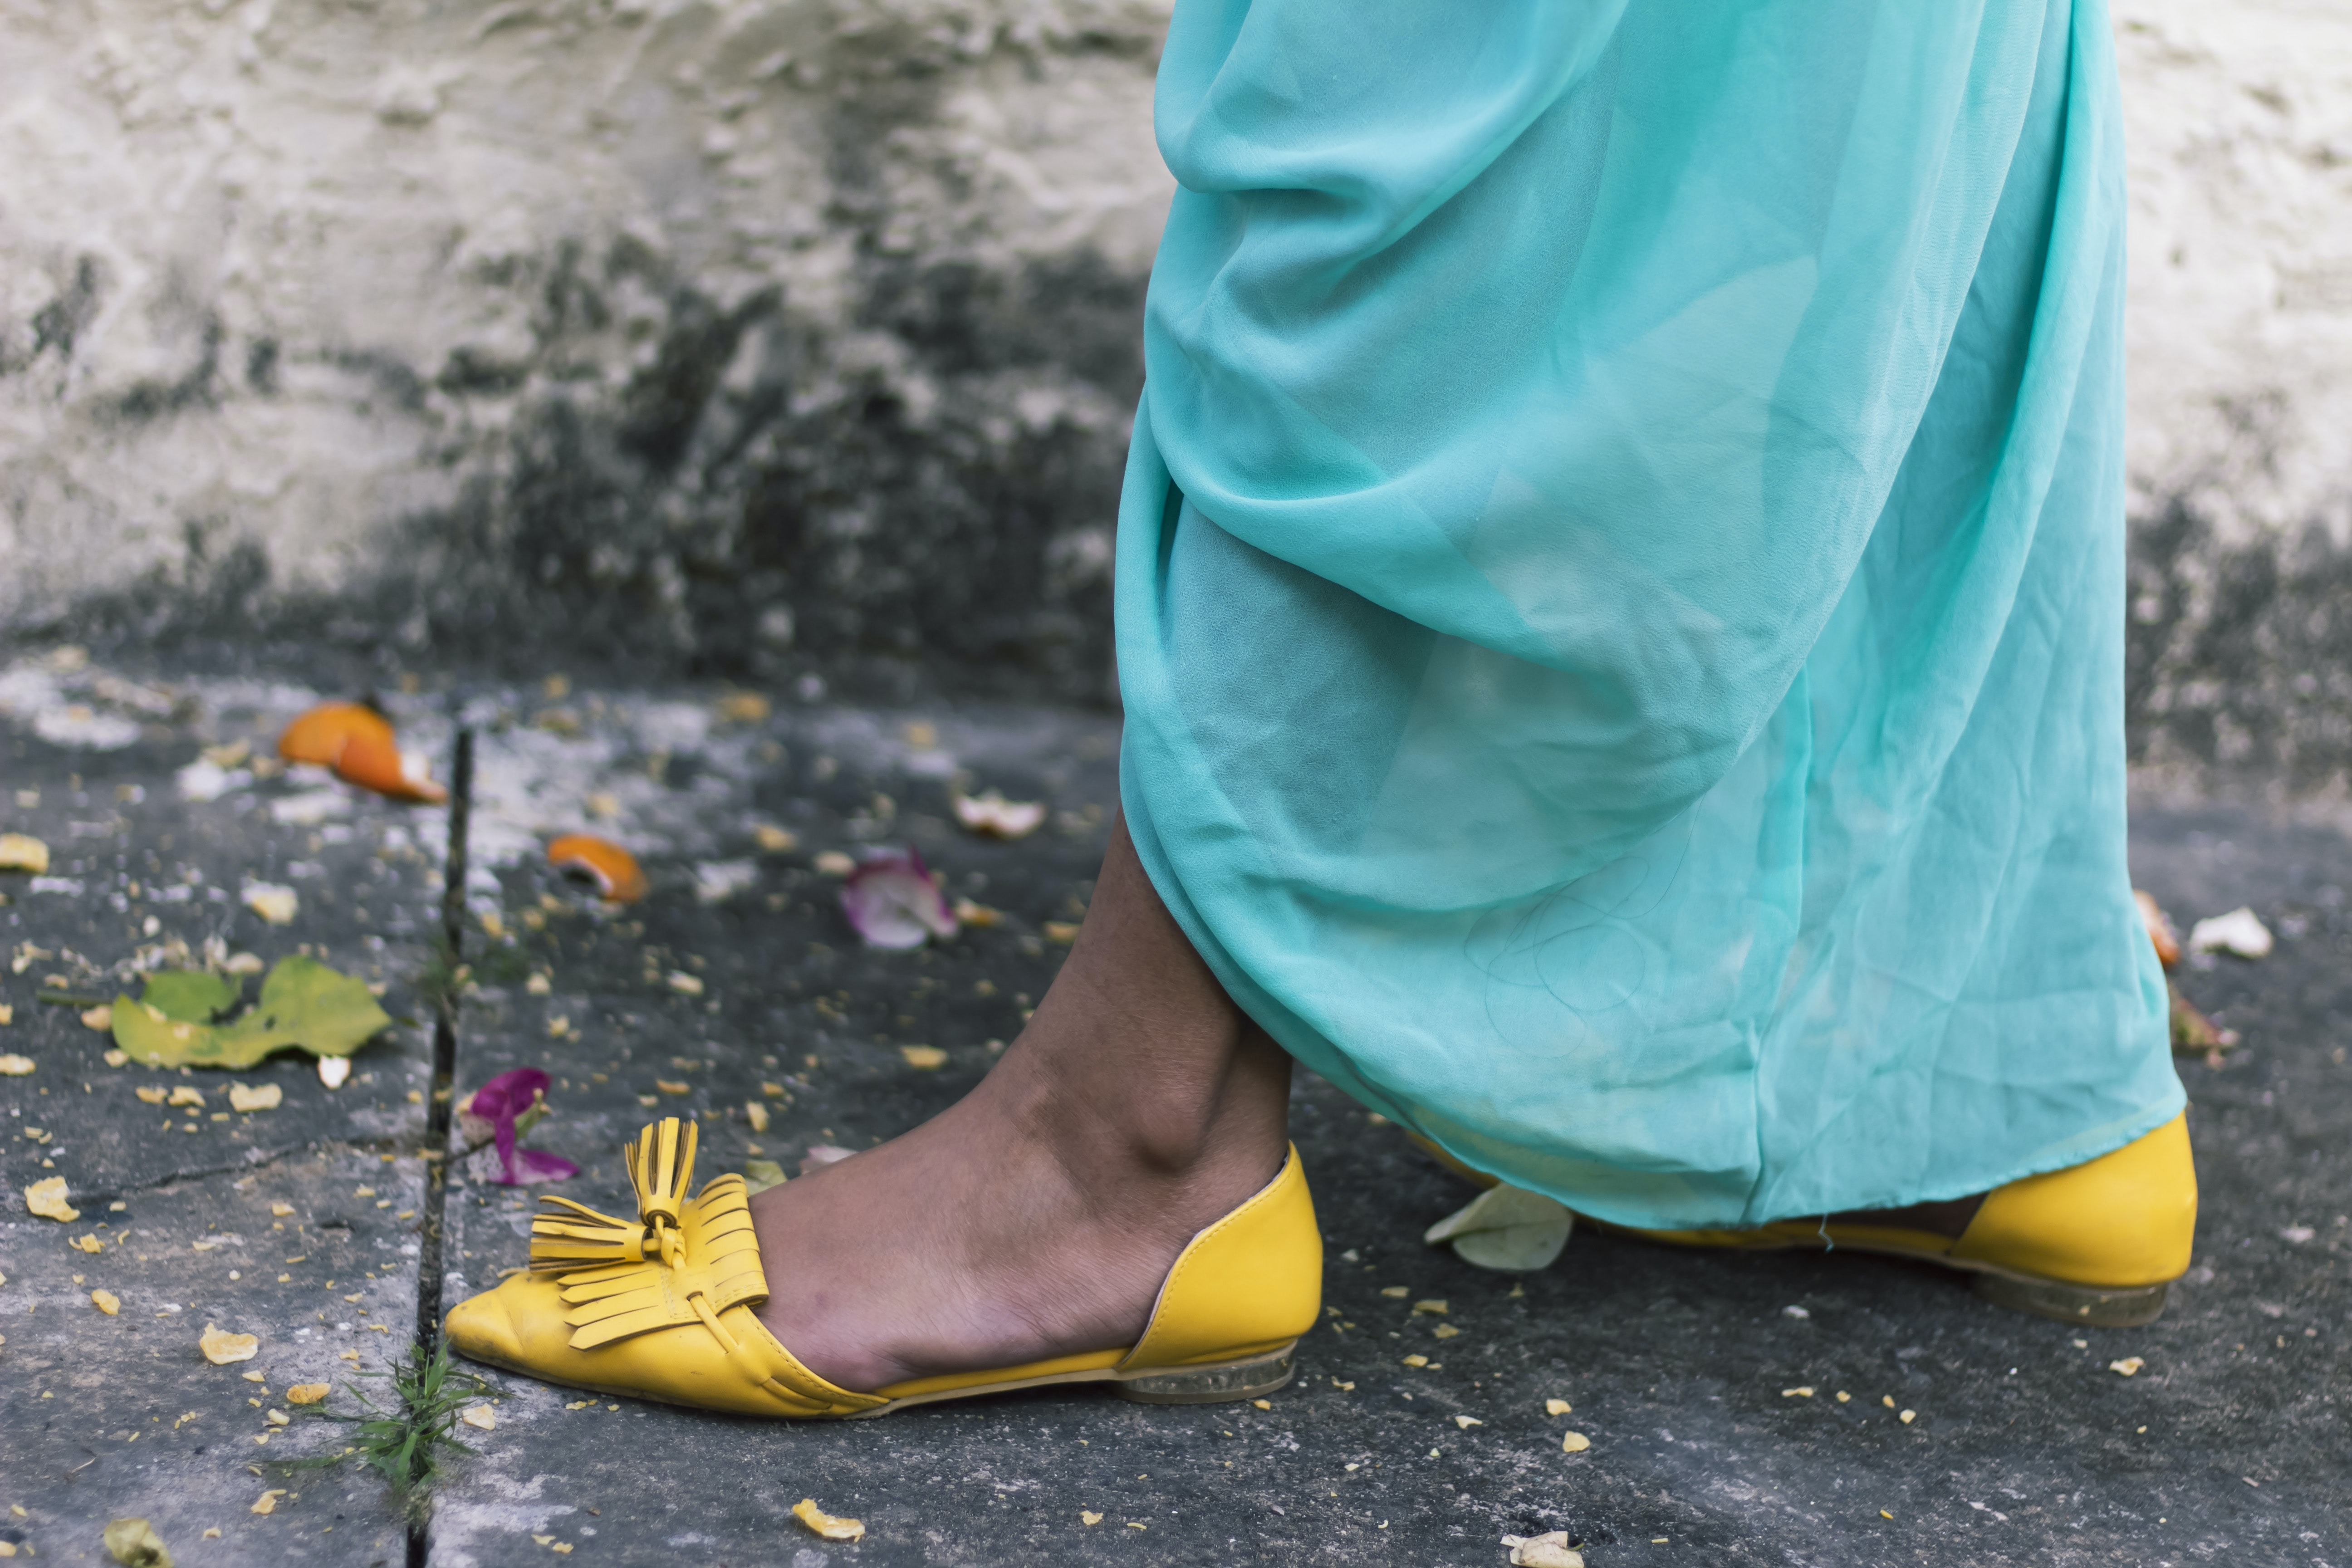 woman wearing yellow leather flats at daytime